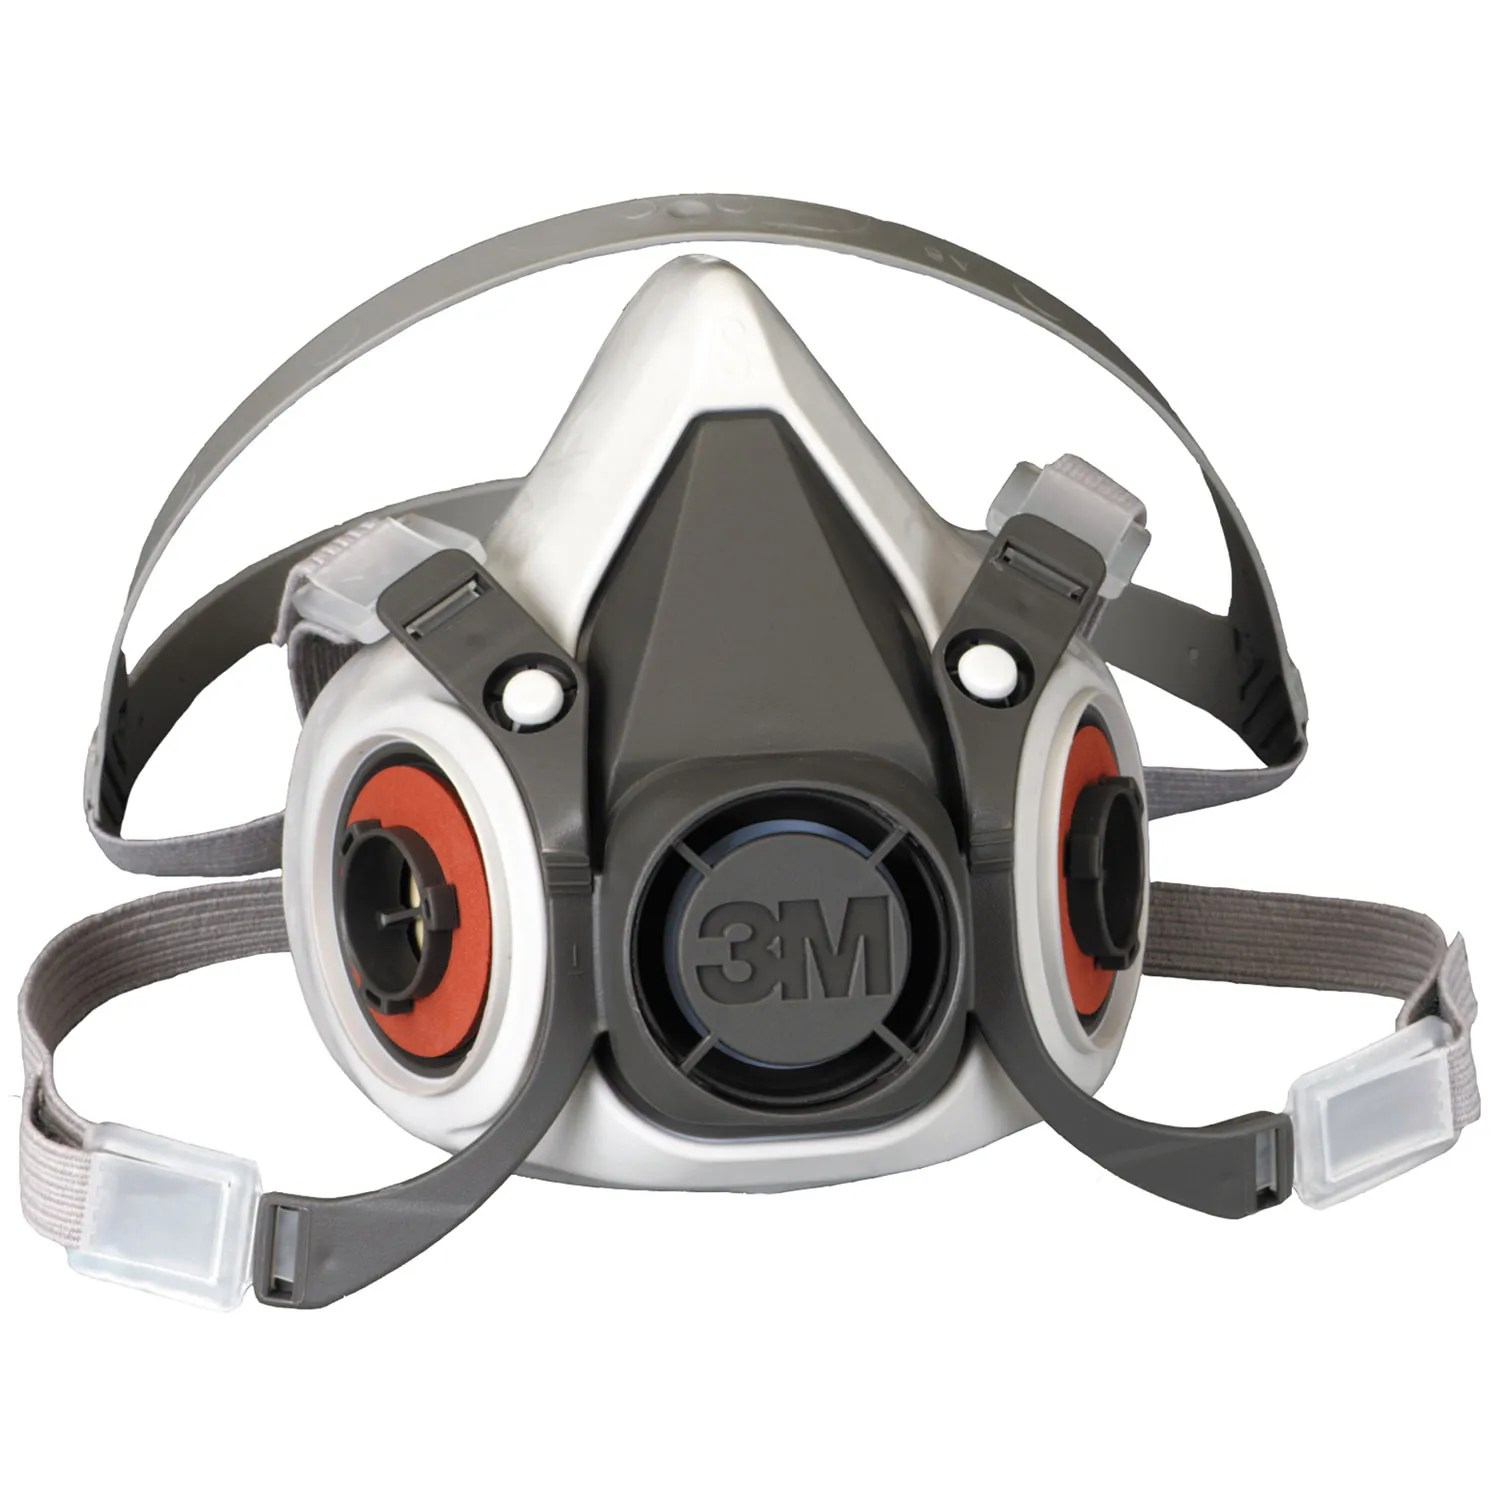 How Often To Change Respirator Filters